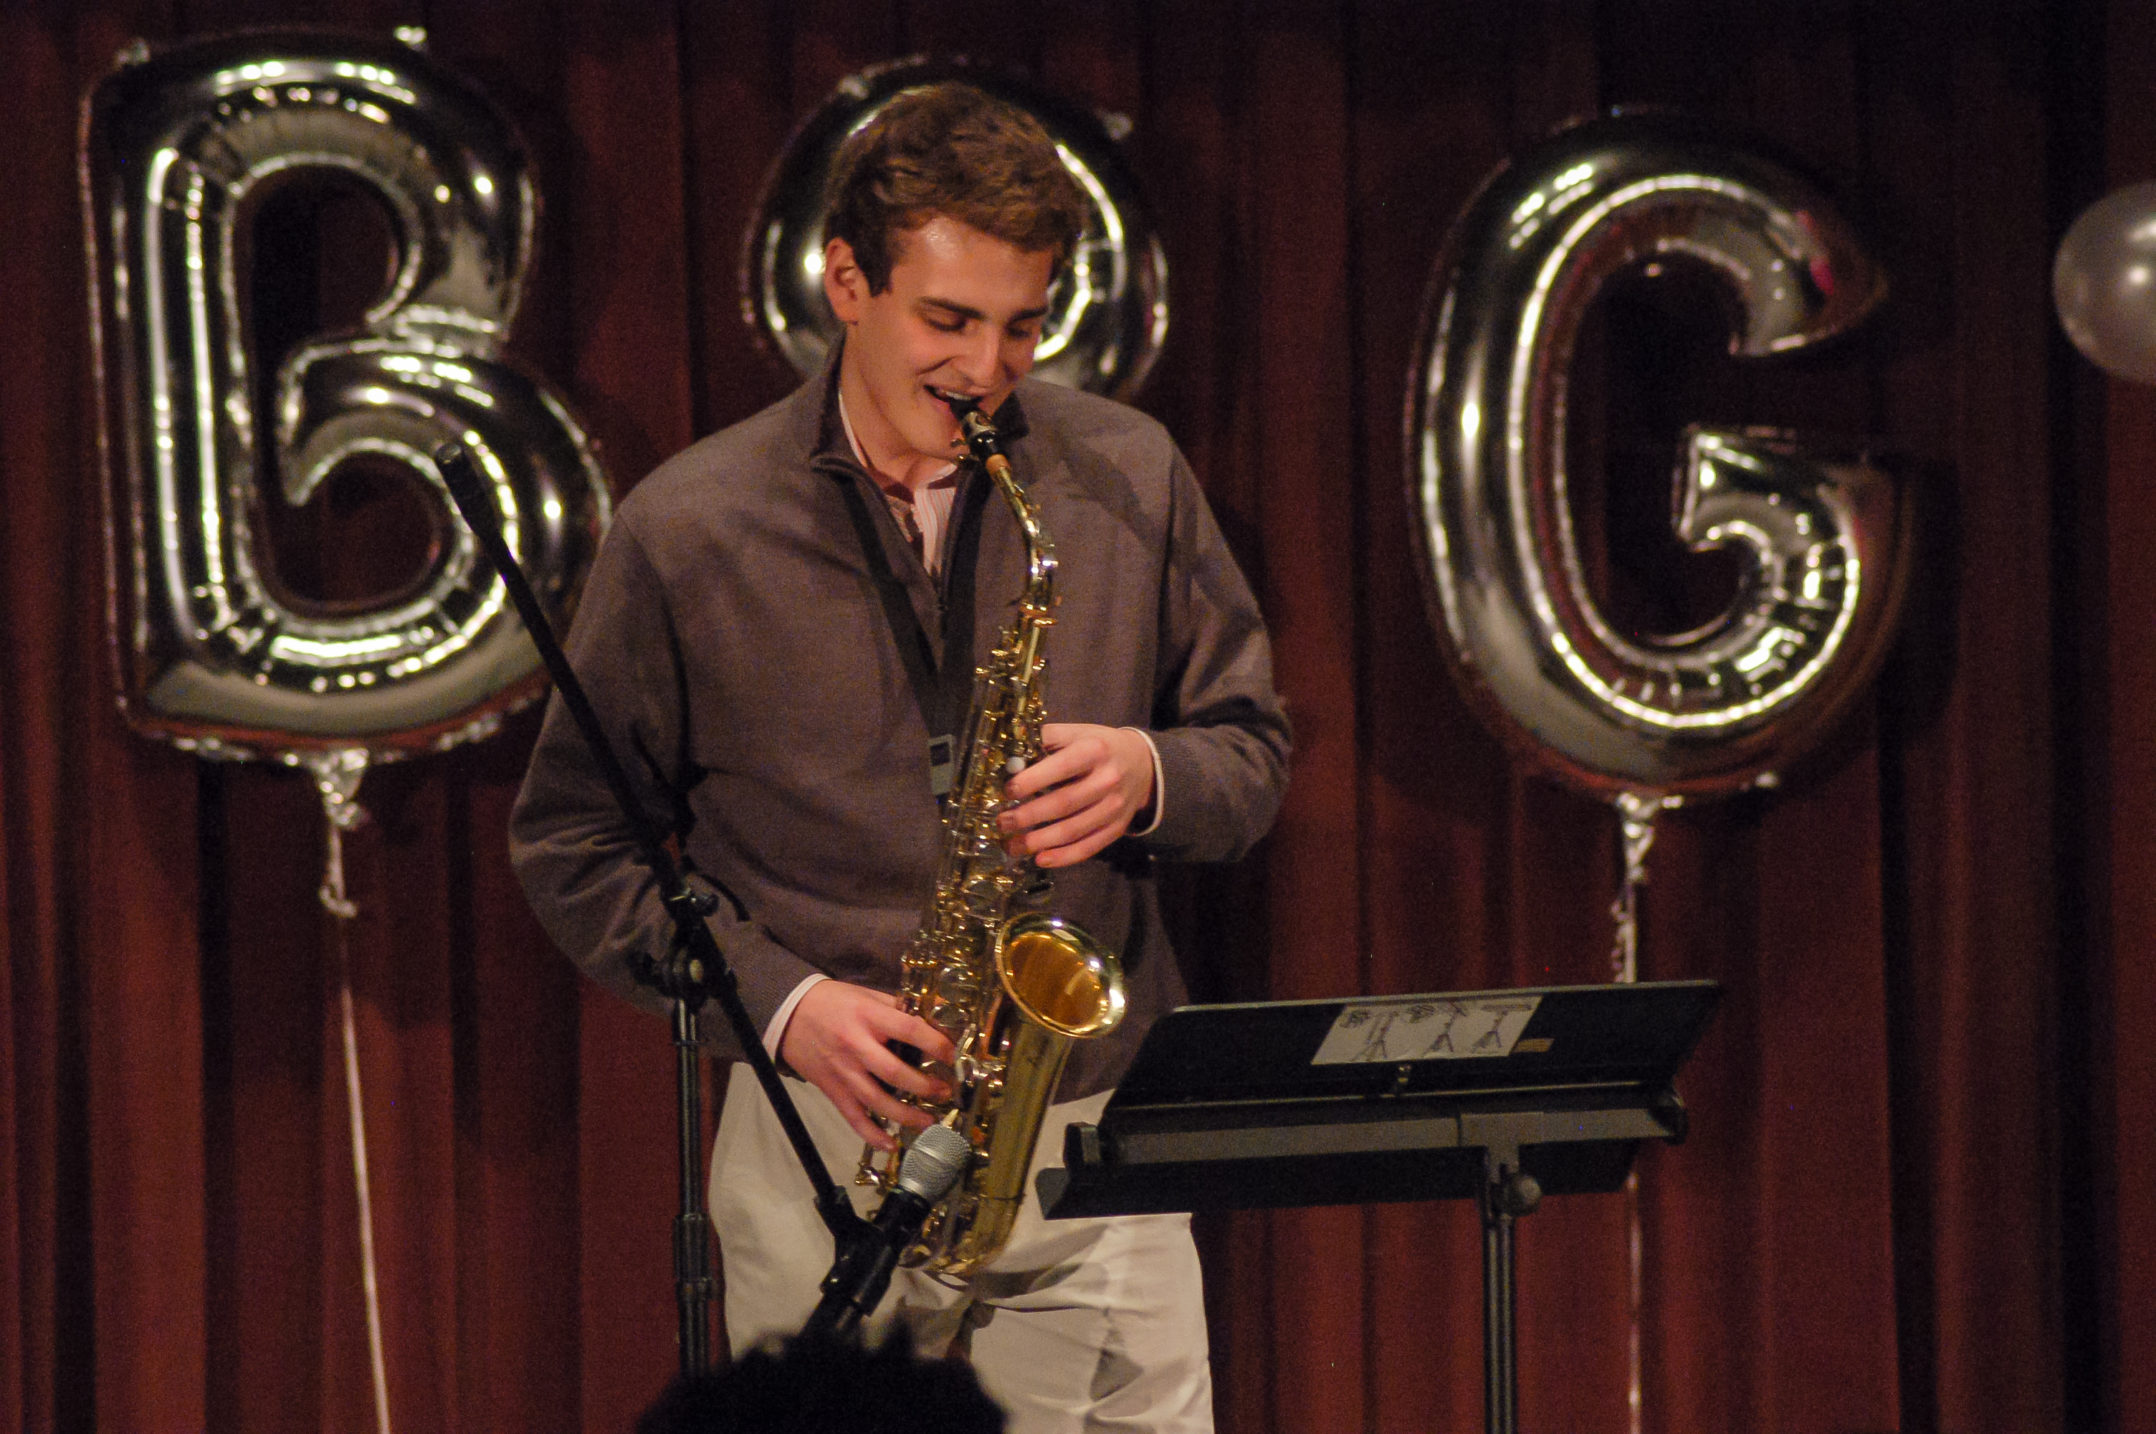 Ian Davis, '18, plays his saxophone for the talent portion of the Mr. Burgundy and Grey competition Saturday, Dec. 2, 2017, in Lamberton Hall. Later in the night, Davis was crowned Mr. Burgundy and Grey. (Alice Wilson/ B&W Staff)